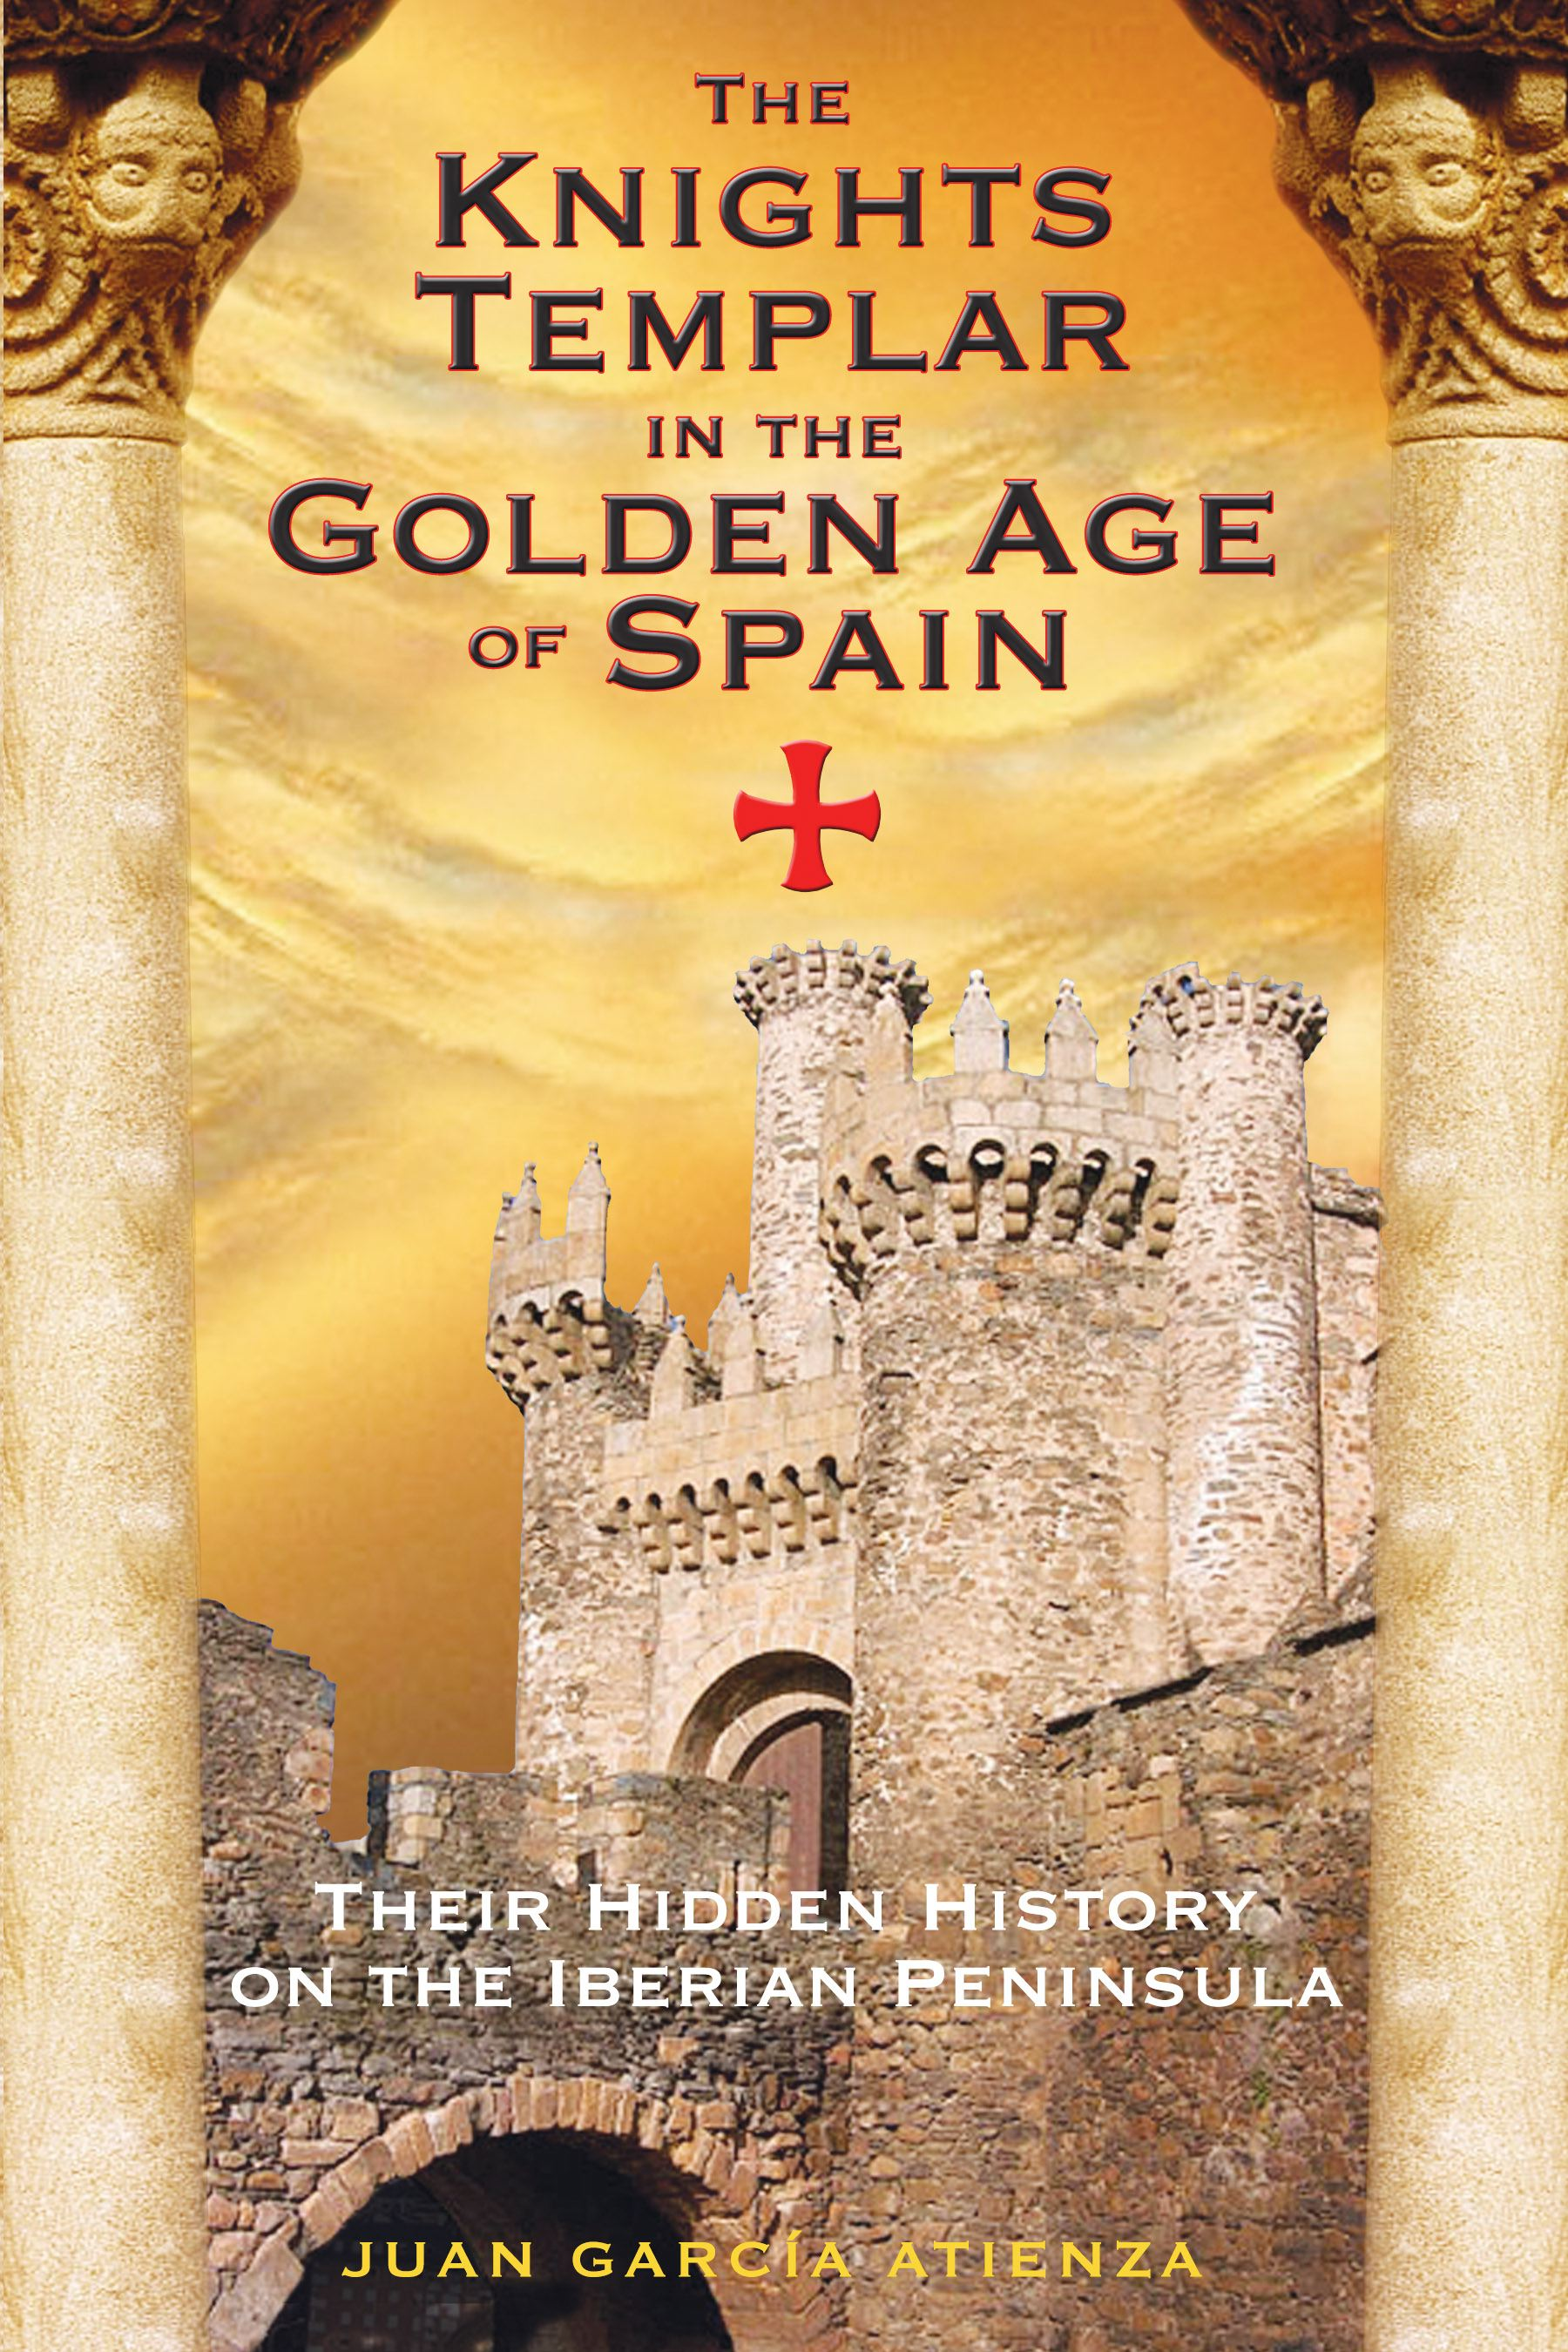 The-knights-templar-in-the-golden-age-of-spain-9781594770982_hr